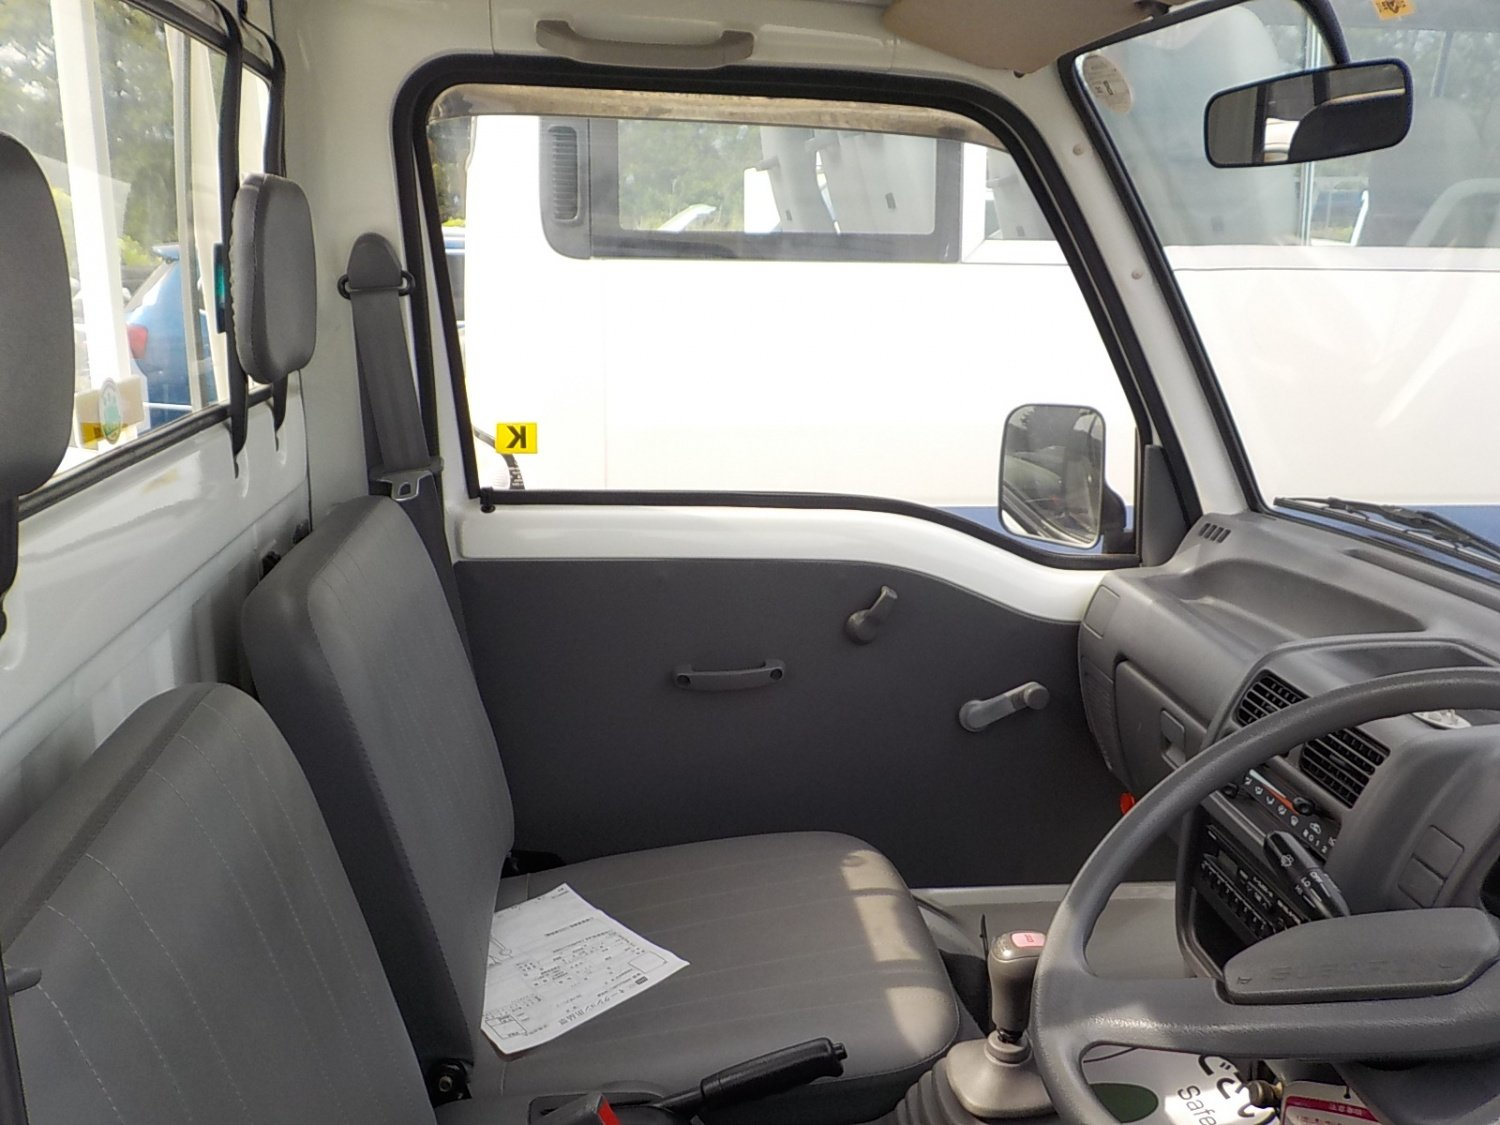 1995 SUBARU SAMBAR 4X4 660 SDX PICKUP TRUCK * ONLY 18000 MILES * For Sale (picture 5 of 6)